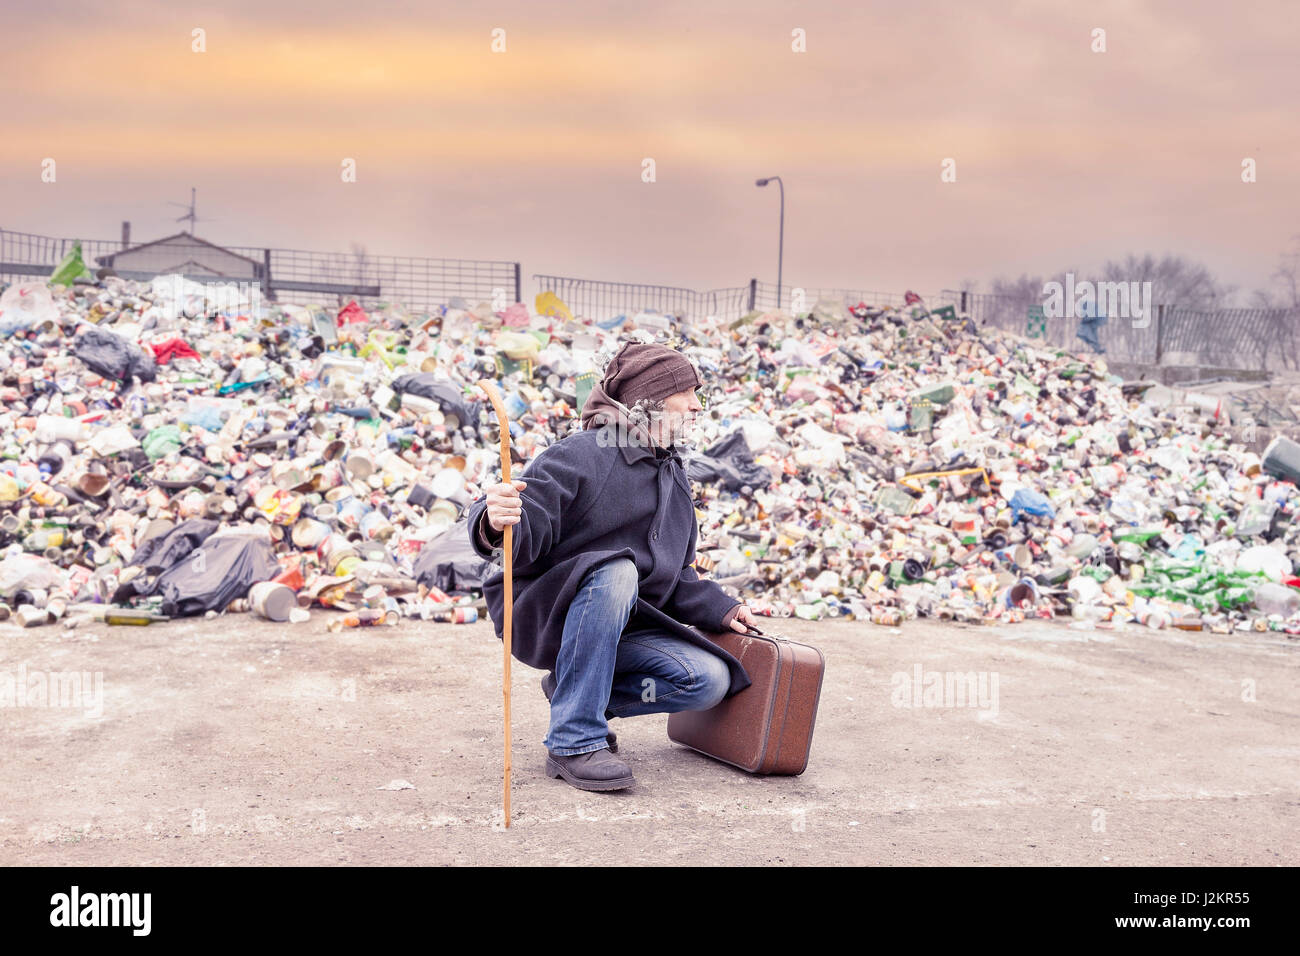 homeless with suitcase lives in landfill - Stock Image